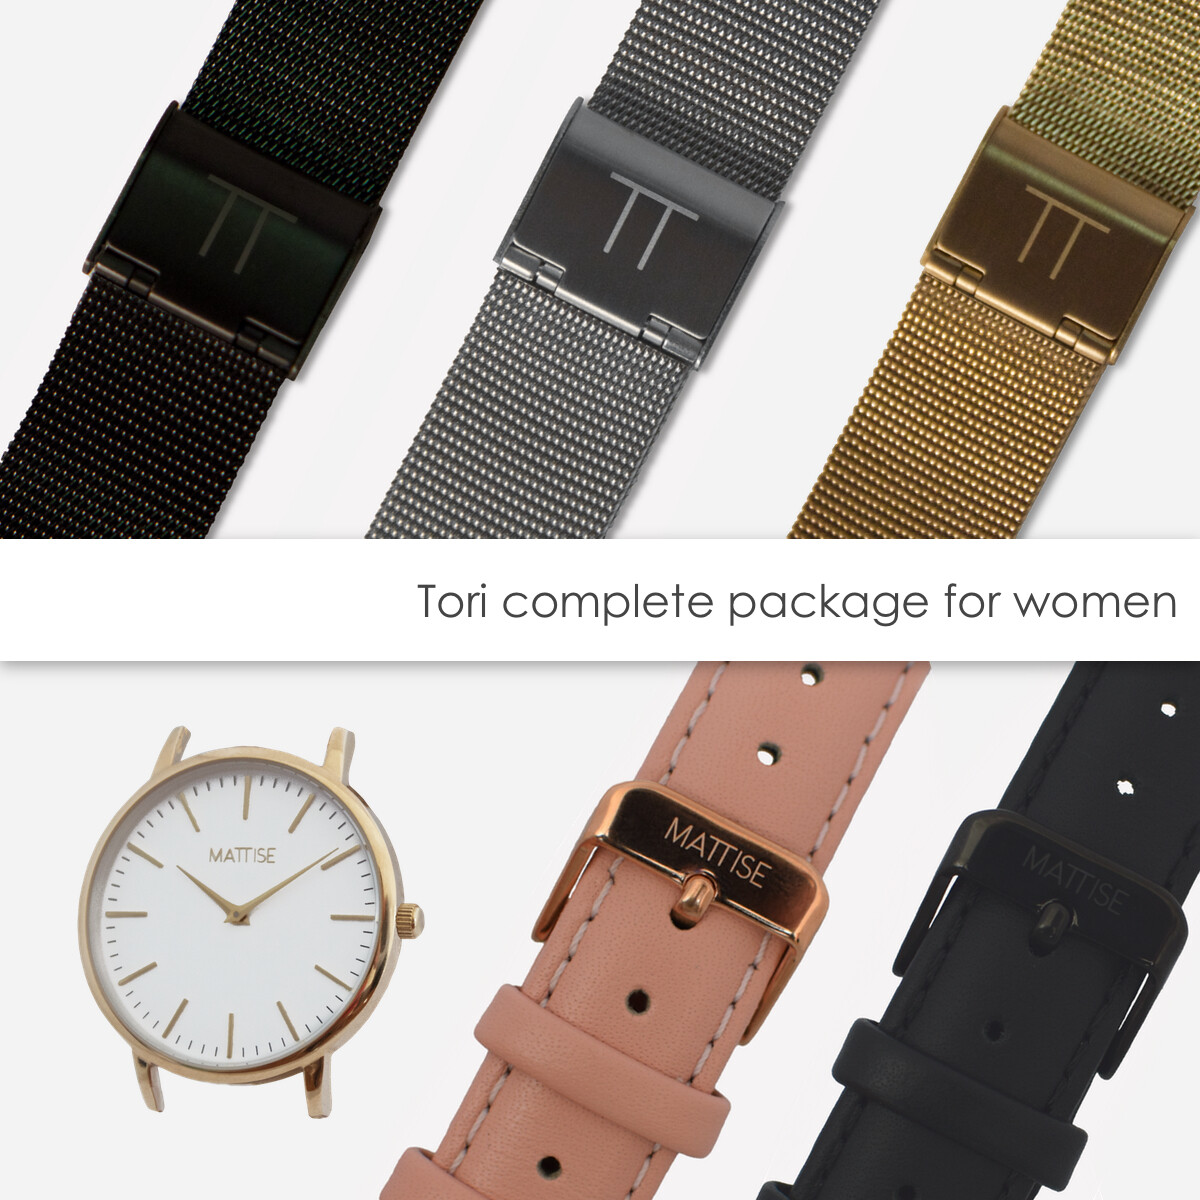 Tori complete package for women